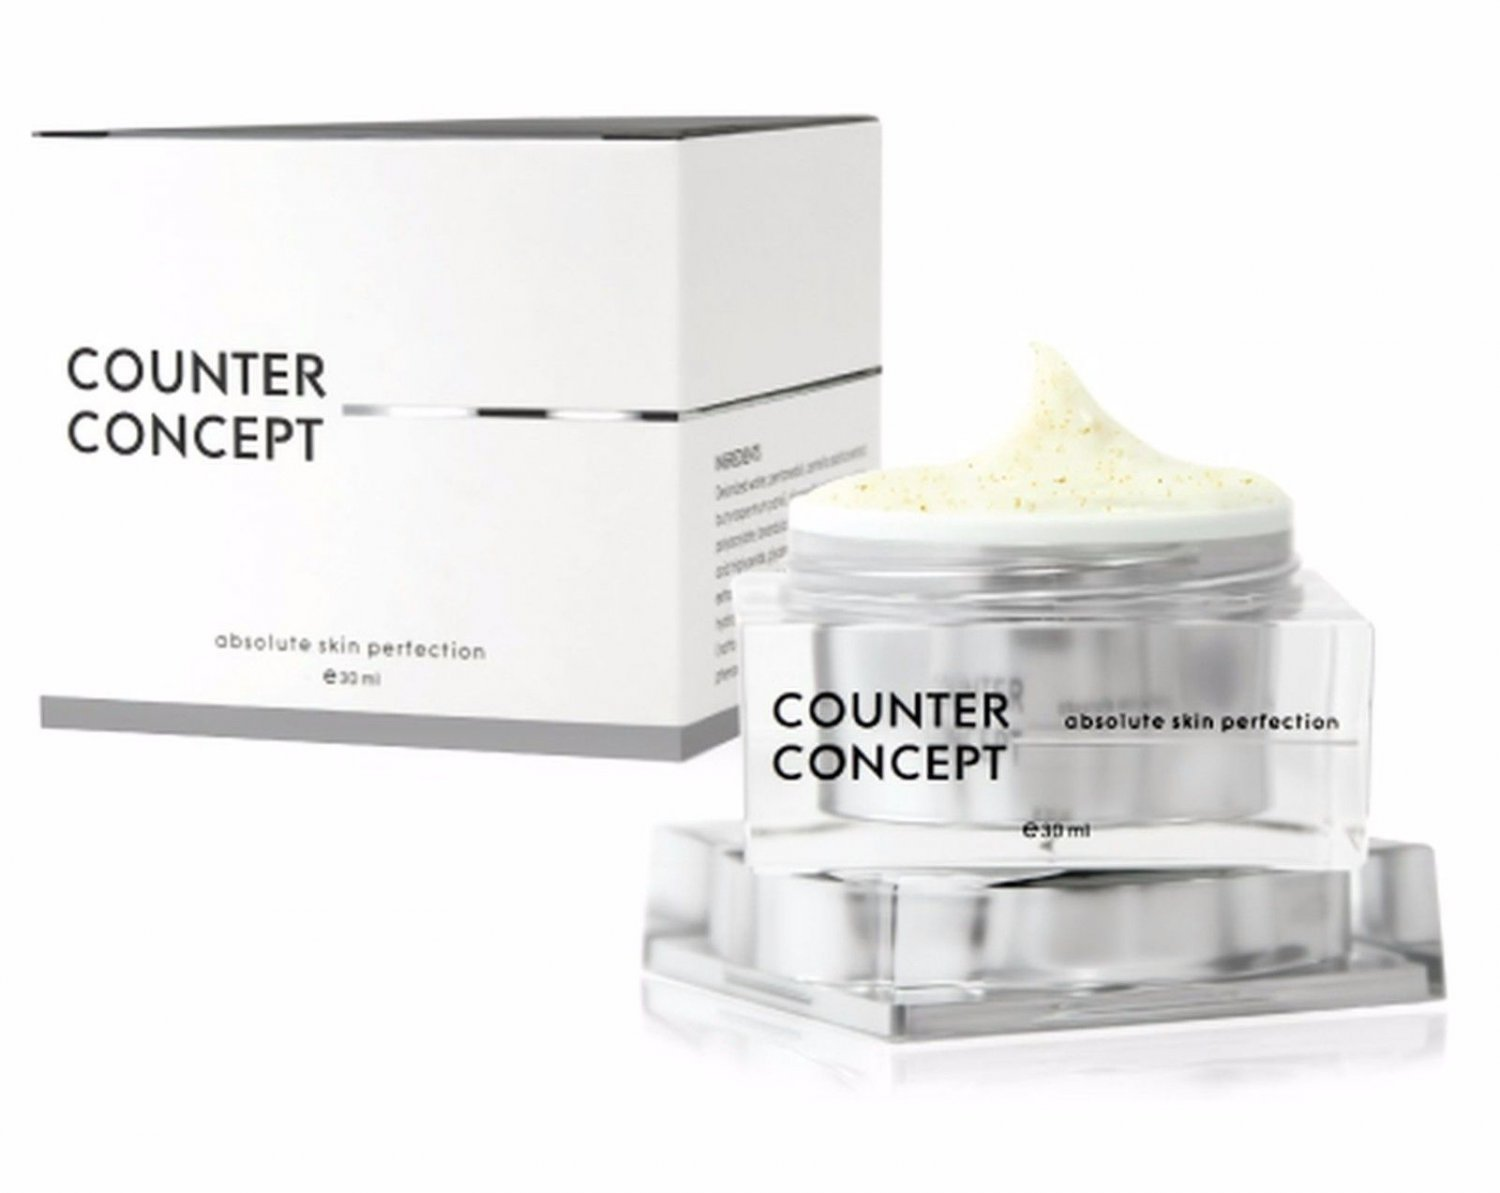 COUNTER CONCEPT Cream Moisturizer & Whitening Absolute Skin Perfection 30 ml.